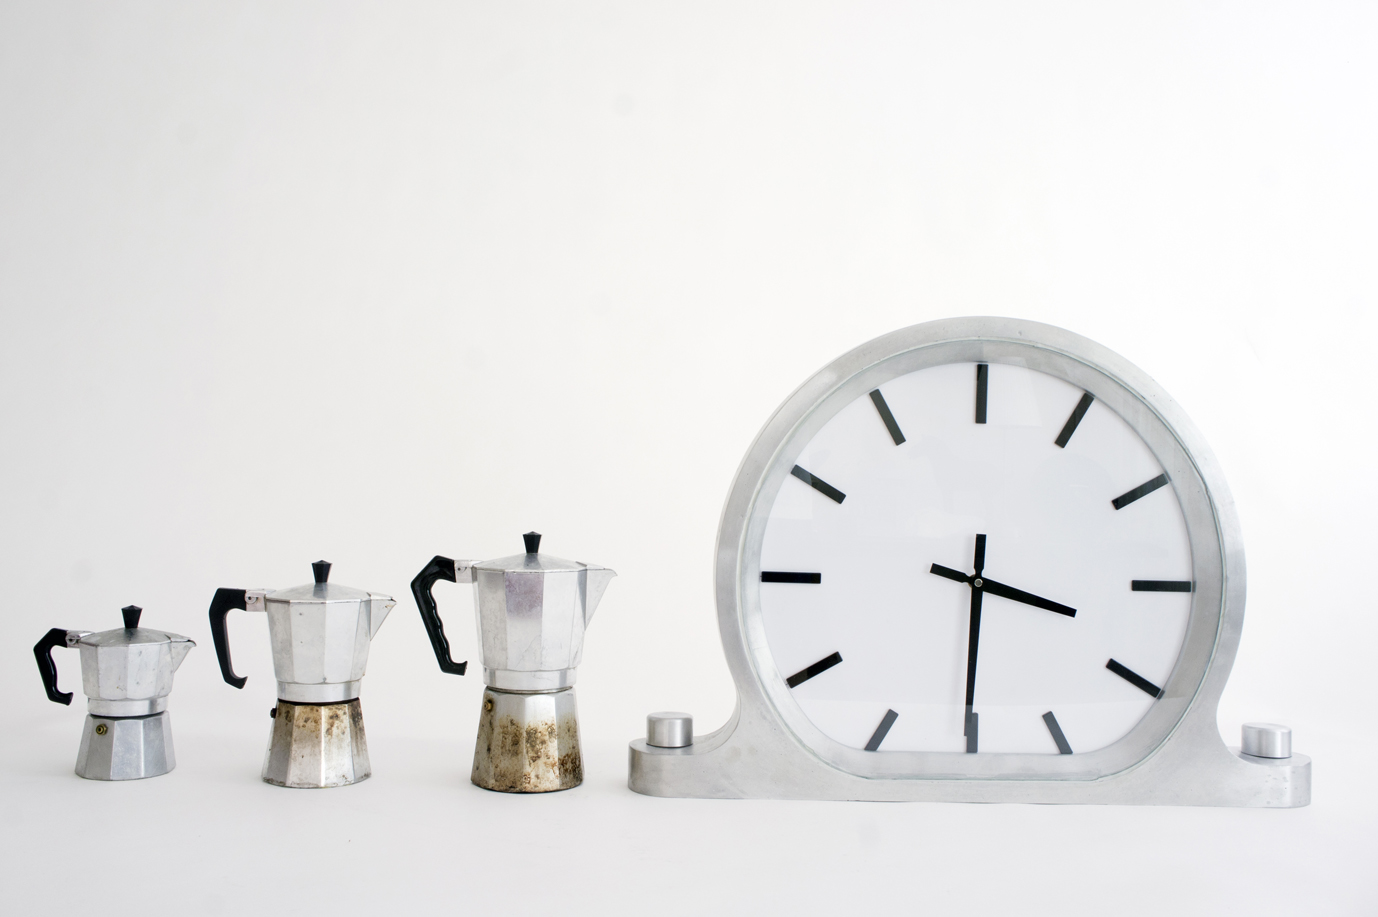 Glen Baghurst's 'Wall clock'  takes simplicity and monumentality to a new level. The coffee pots are to give some sense of scale and are not a reflection of Baghurst's obsession with coffee (yeah right).